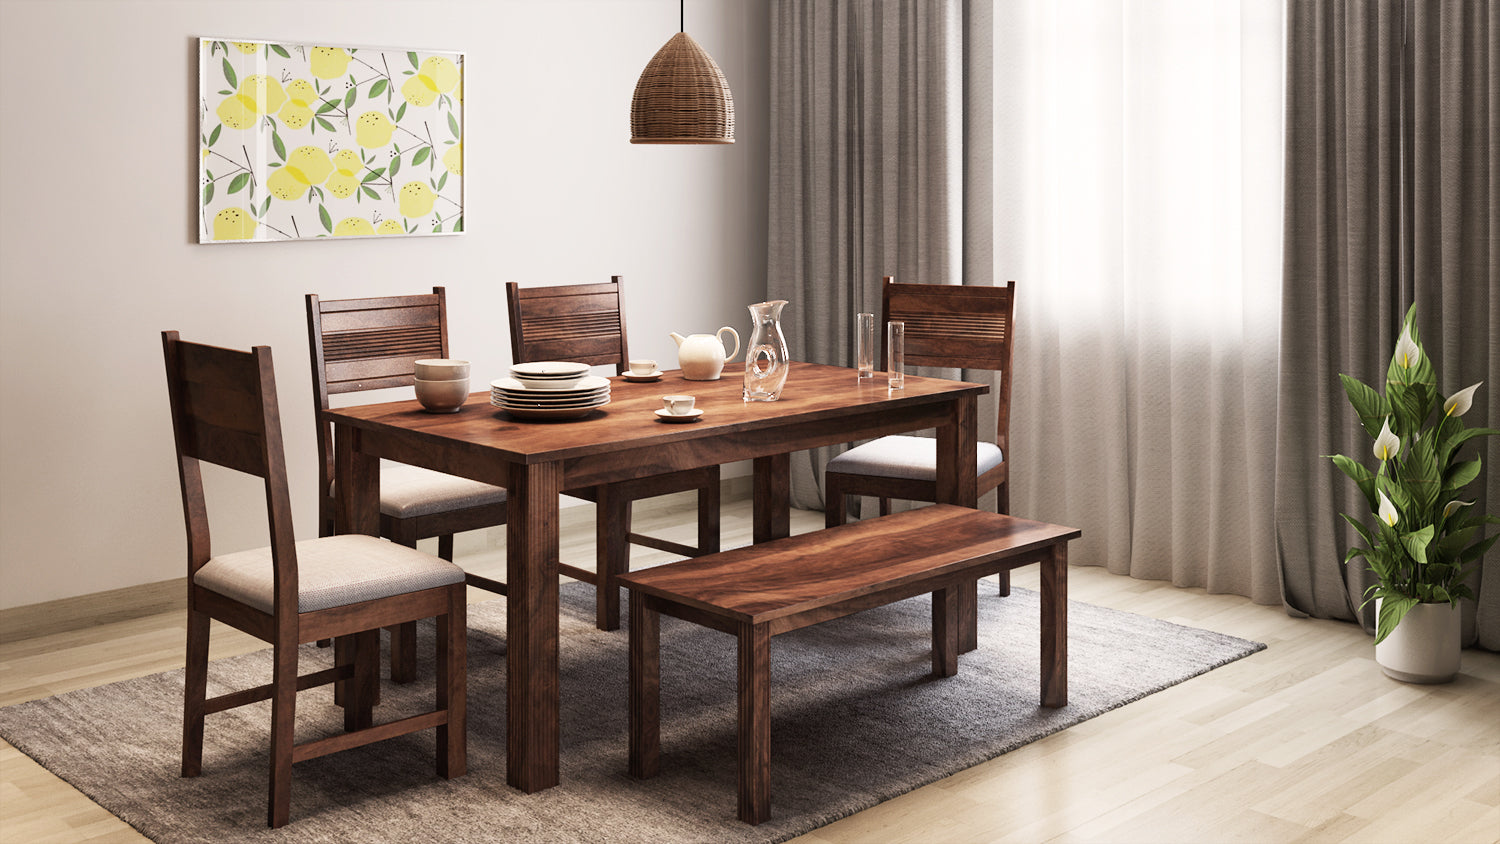 Buy 6 Seater Hove Dining Table With Chairs Bench In India Buy